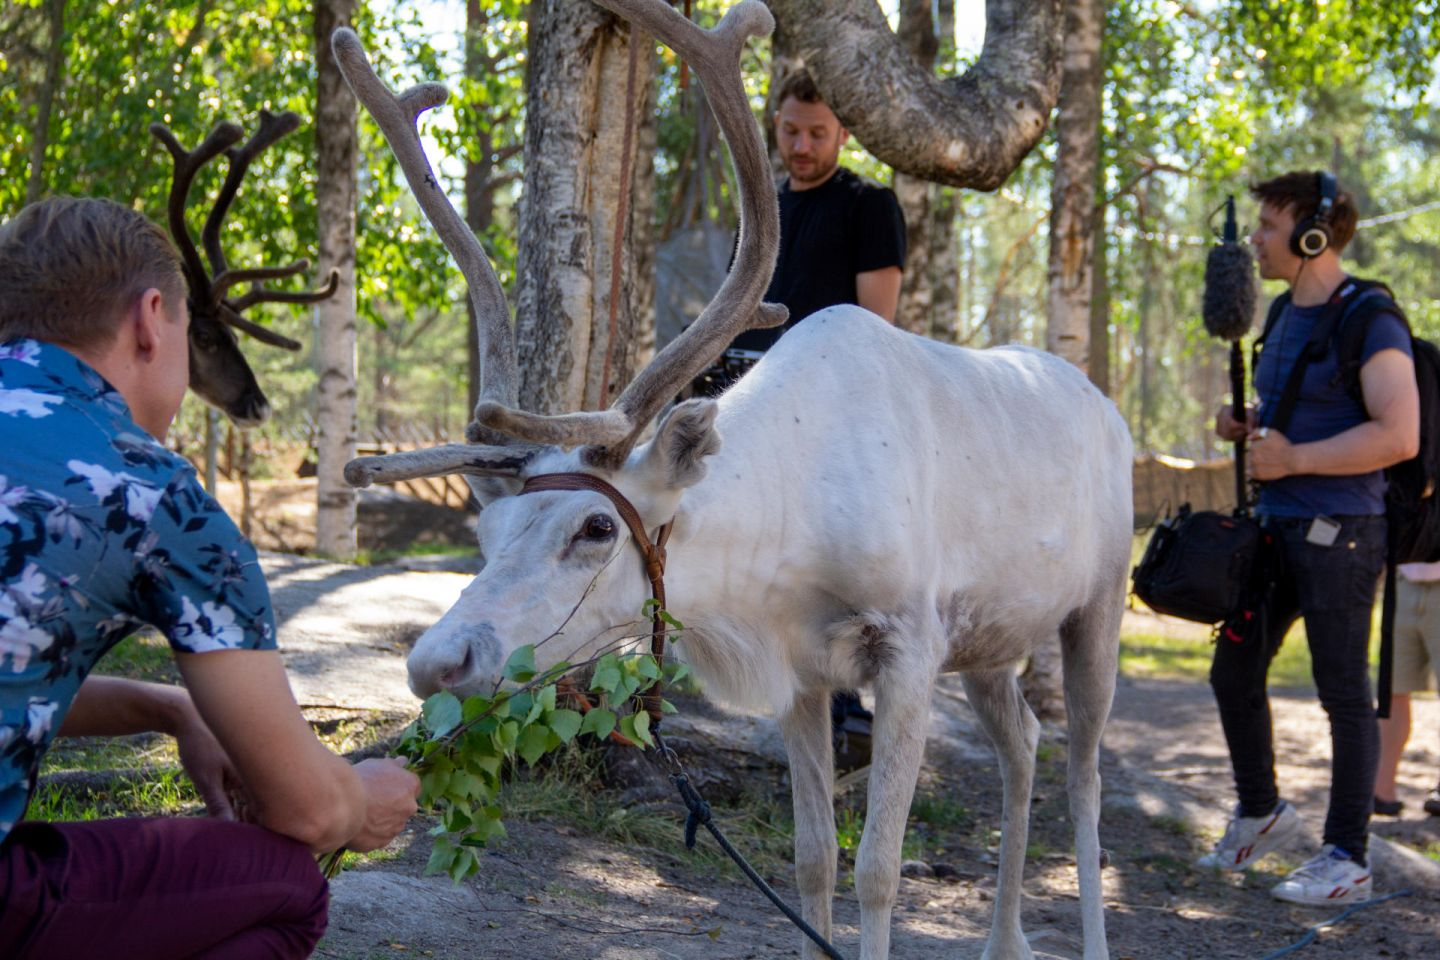 Host feeding reindeer during filming of reality show at Santa Claus Village in Rovaniemi, Finland